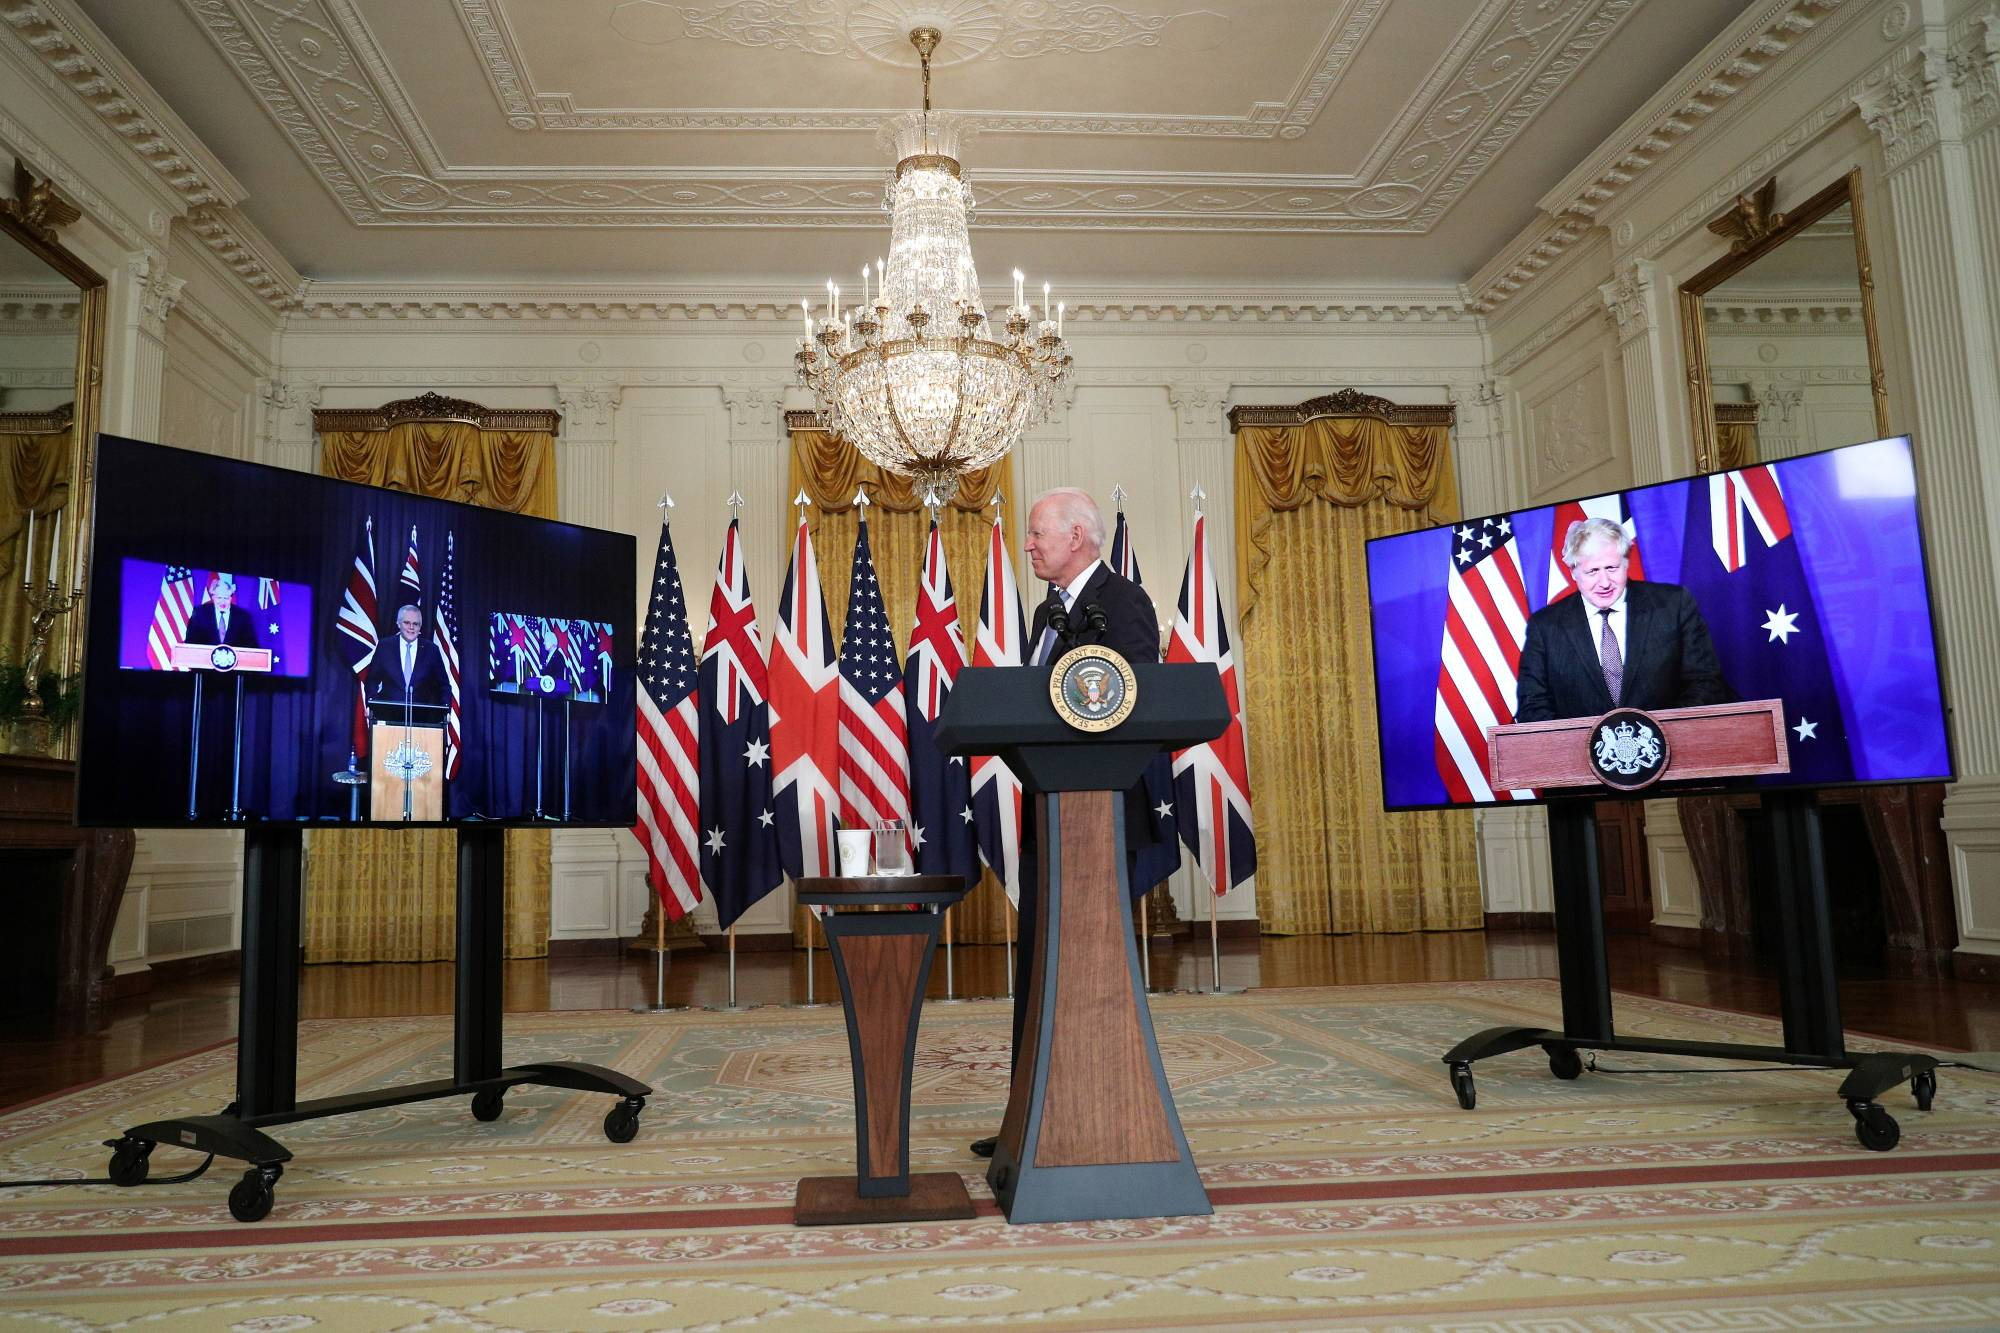 U.S. President Joe Biden delivers remarks on a national security initiative at a virtual news conference with Australian Prime Minister Scott Morrison and British Prime Minister Boris Johnson at the White House in Washington on Wednesday. | REUTERS